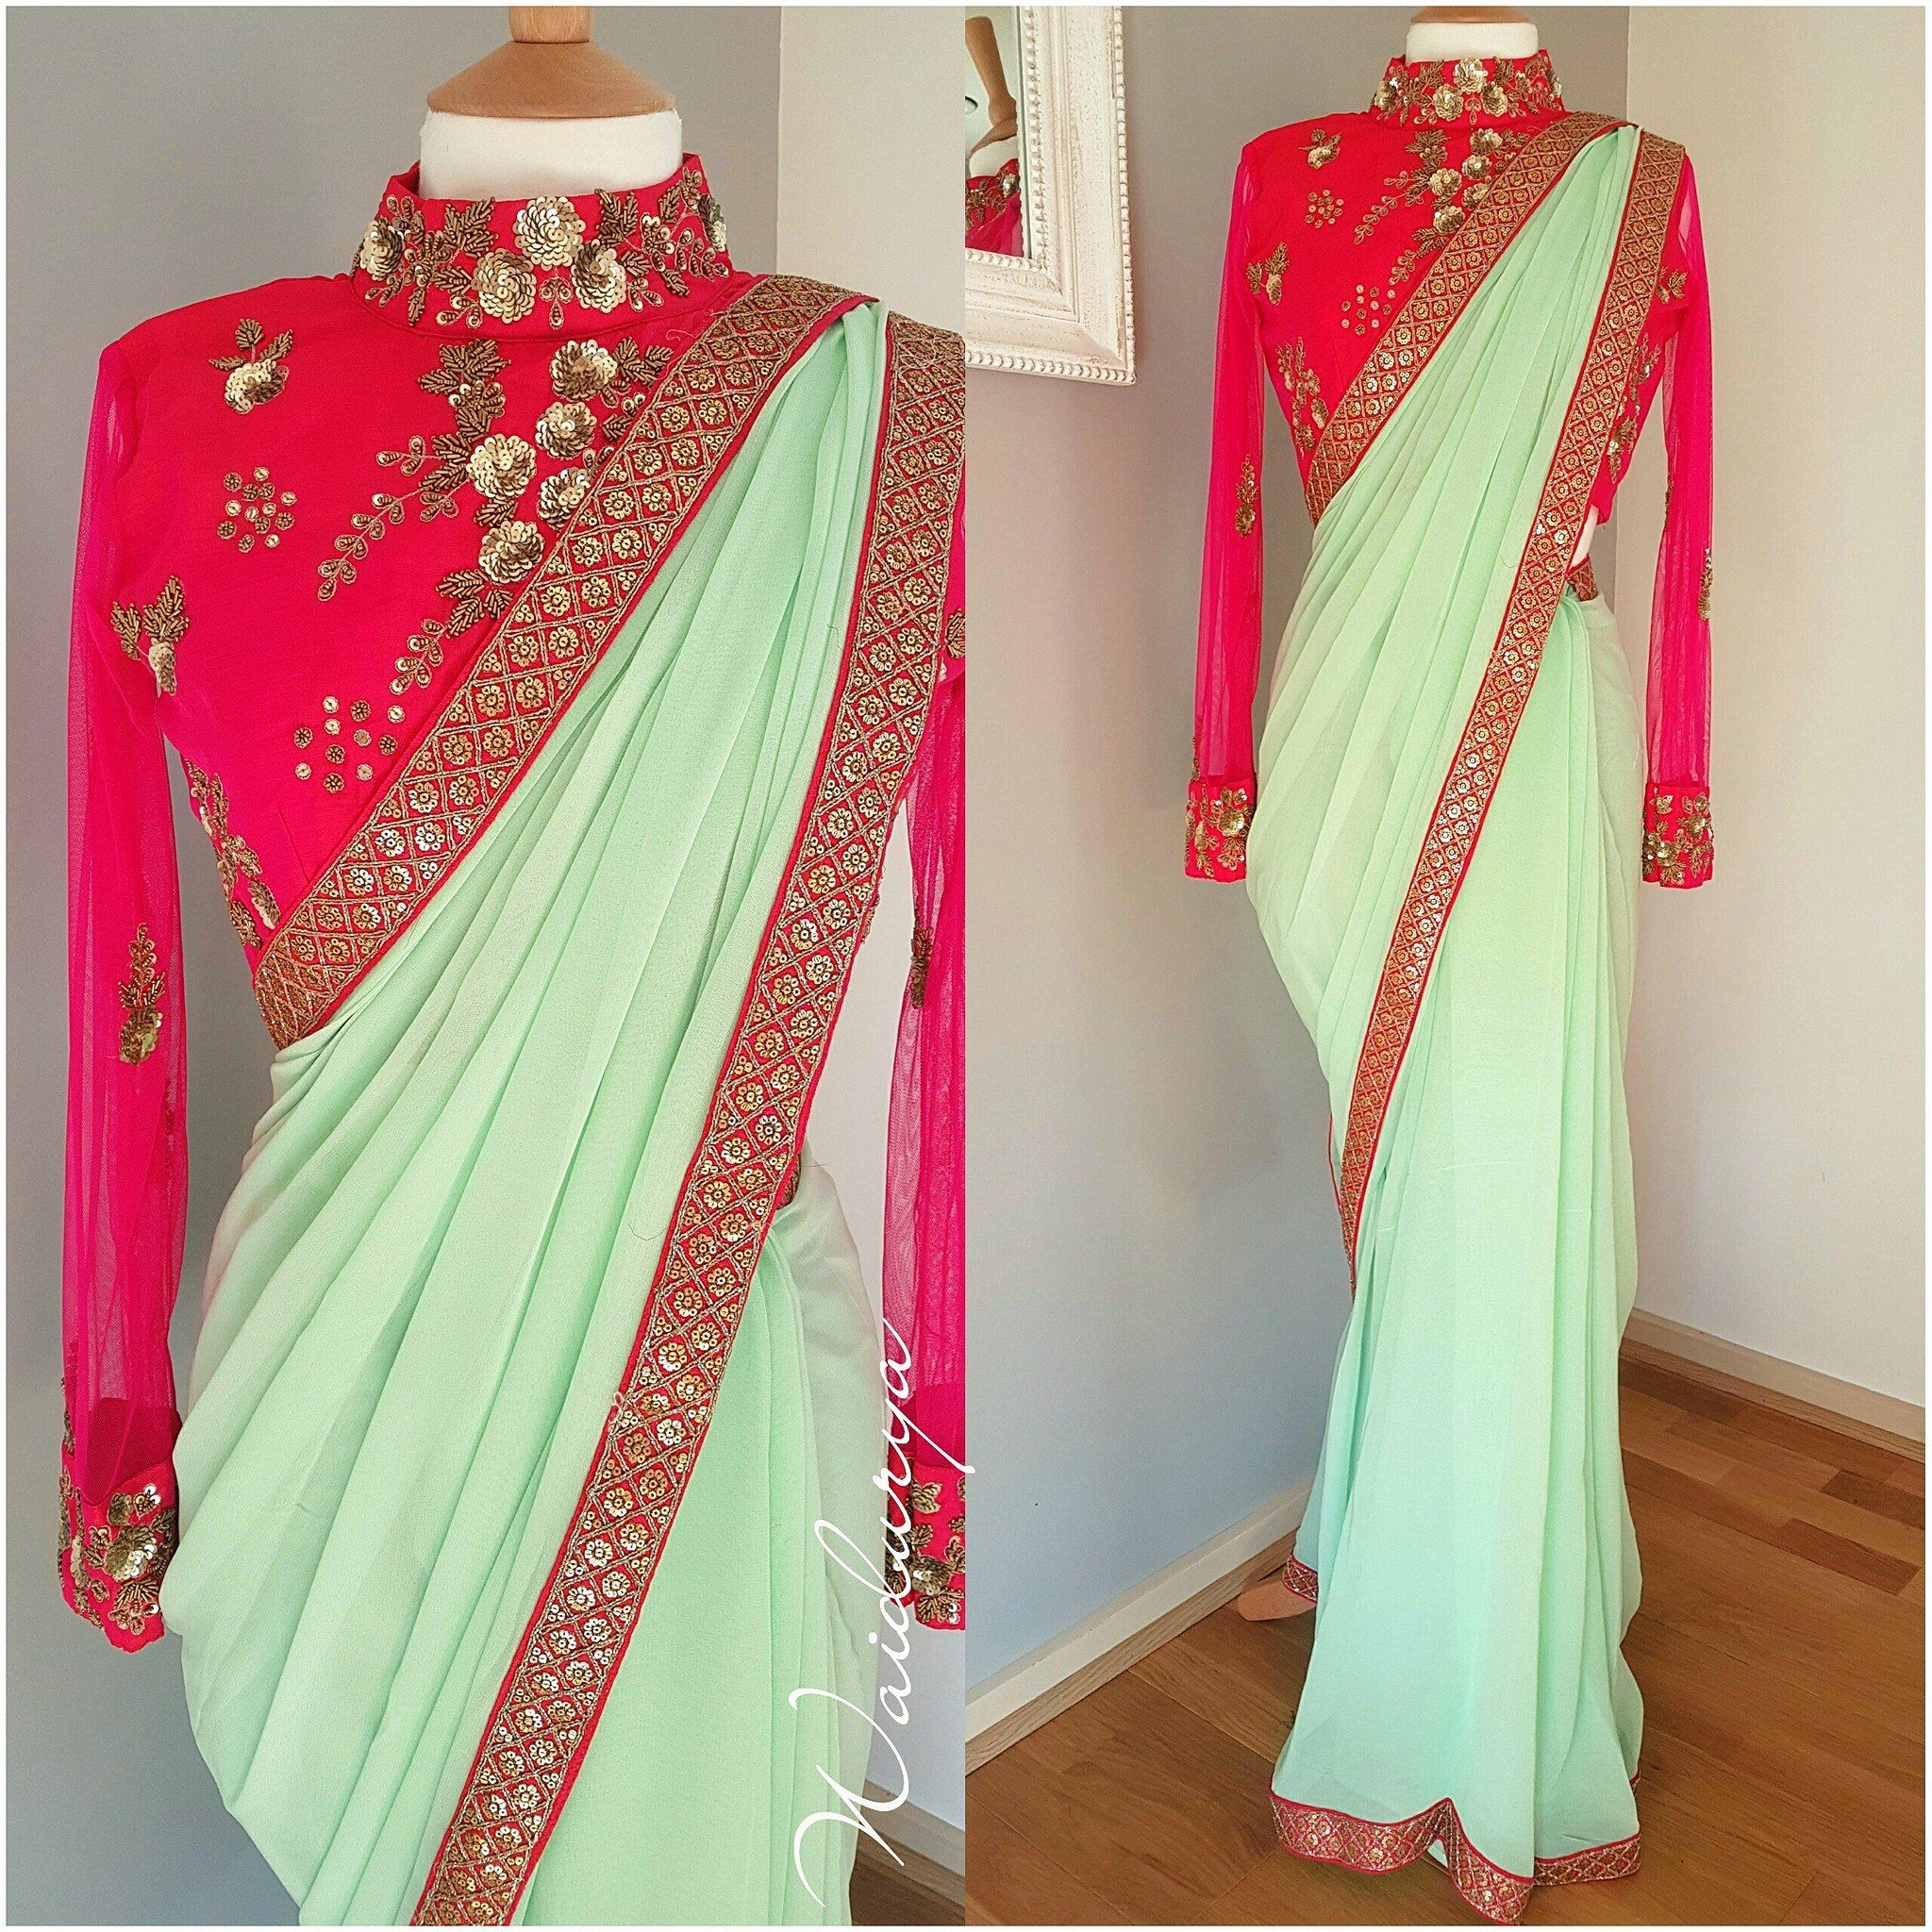 00880625ea2d04 Beautiful pista green color designer saree and pink color designer blouse  with full length sleeves. Blouse with hand embroidery zardosi work.